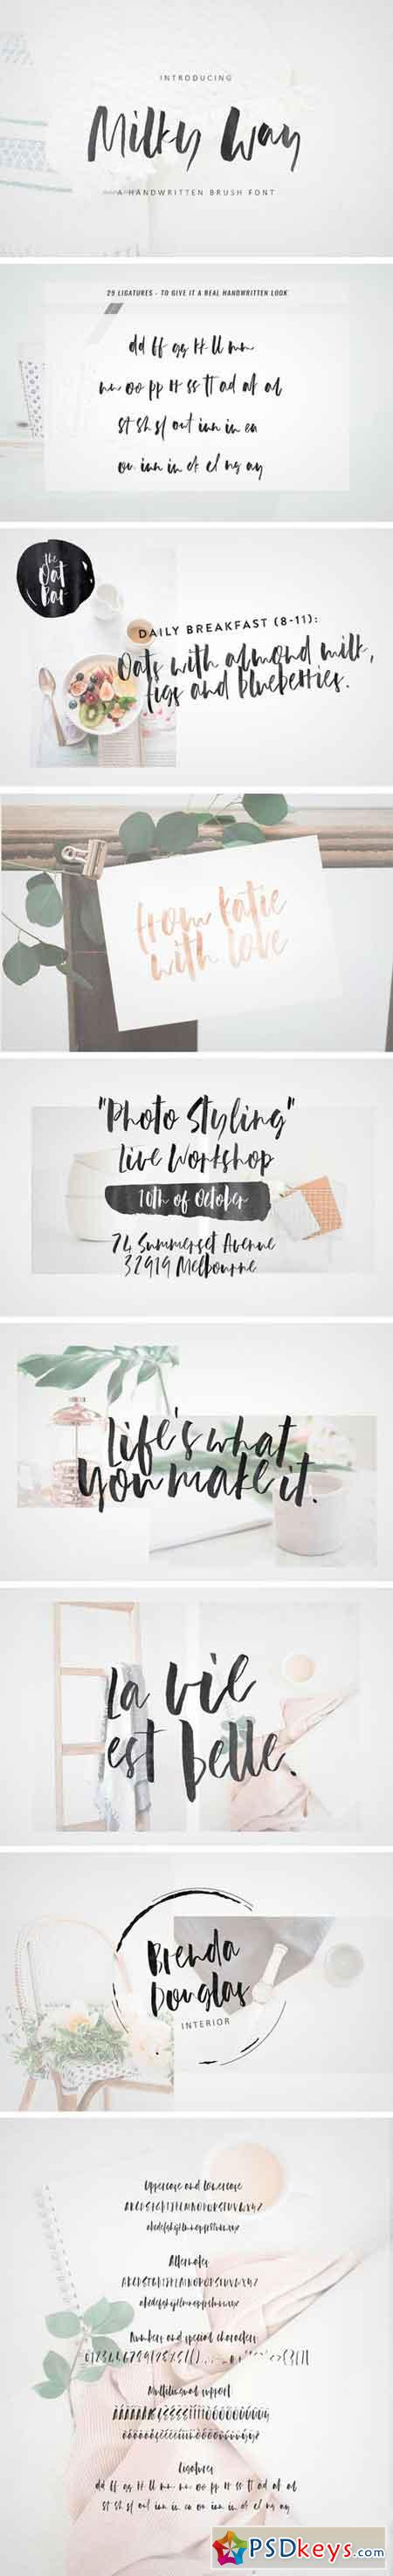 Milky Way Brush Font 2174035